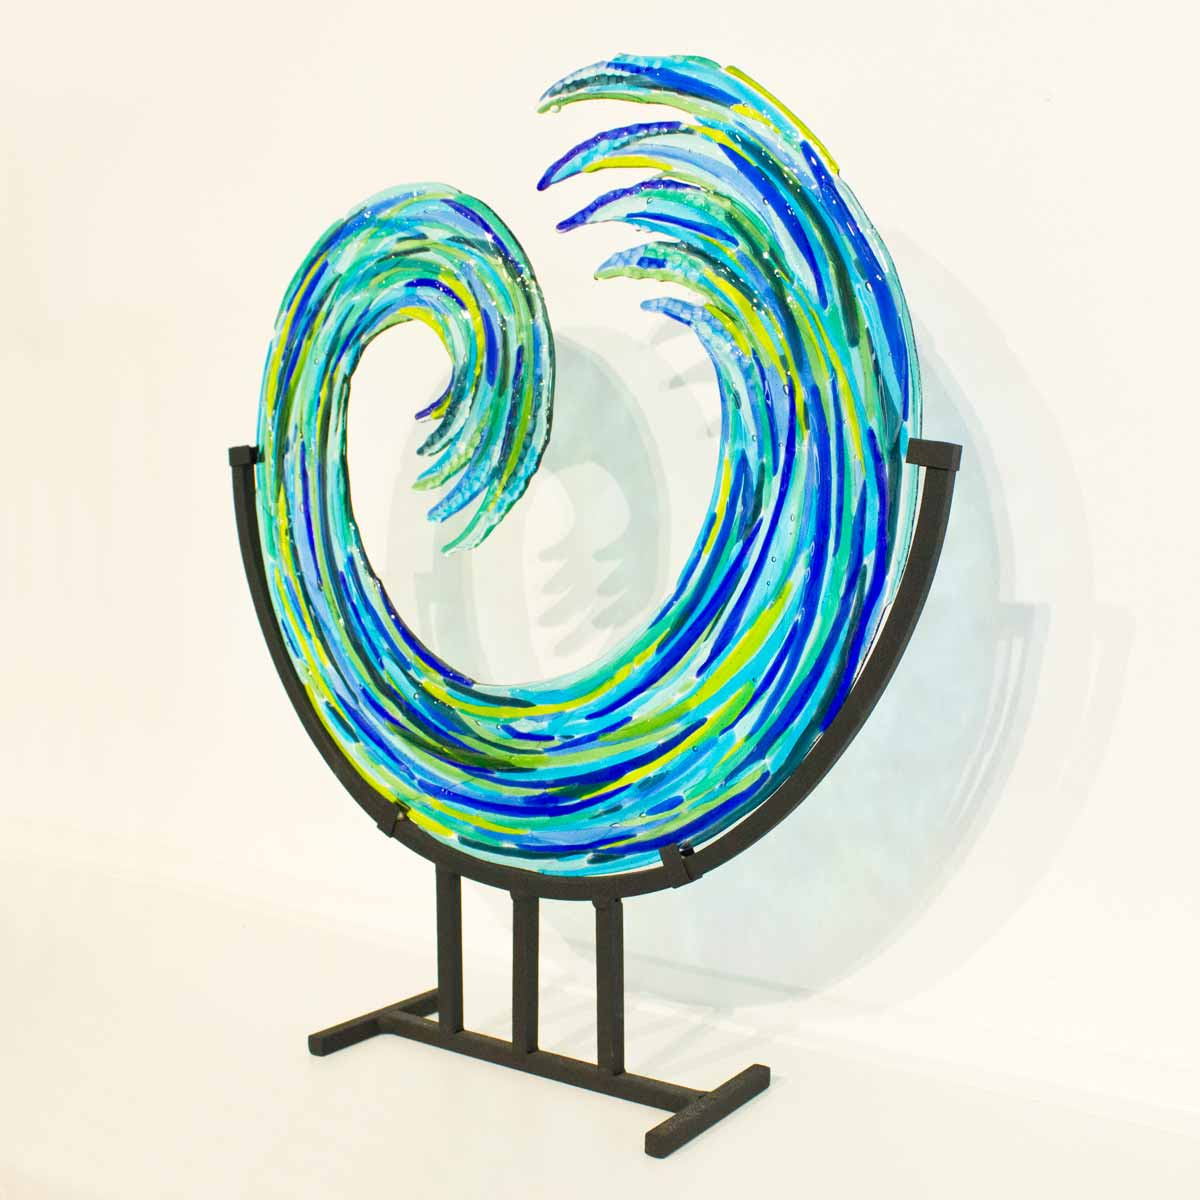 Hand-crafted glass art by Galiani Glass Art. Free-standing kilnformed glass wave standing on matt black heavy metal stand (optional).